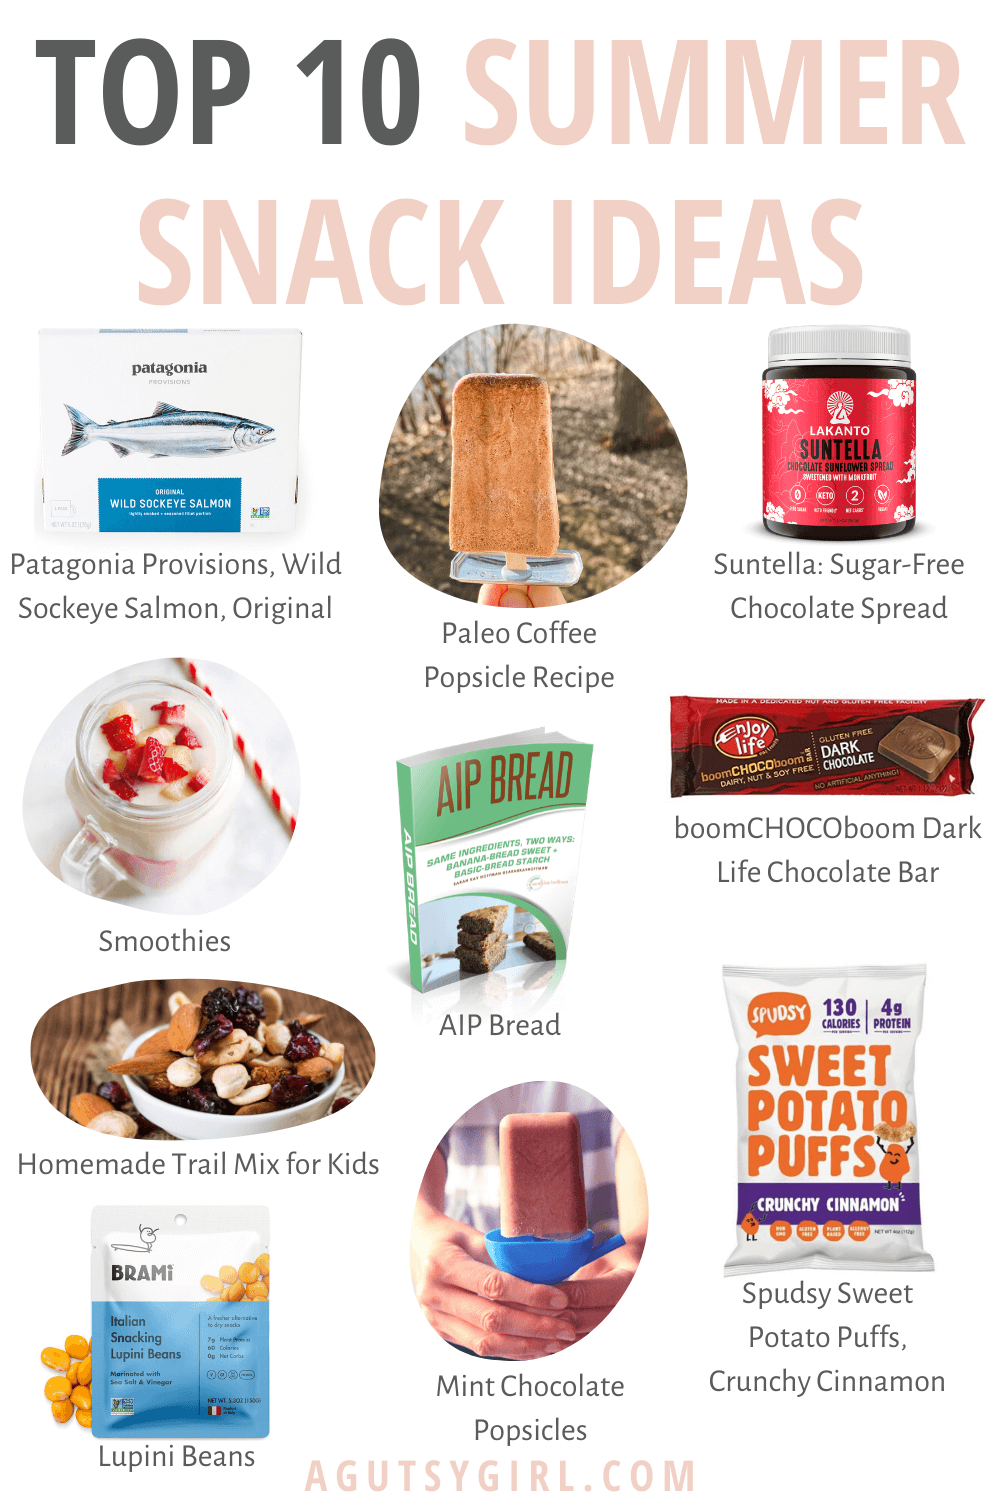 Top 10 Summer Snack Ideas agutsygirl.com #summer #summersnacks #glutenfree #healthyliving